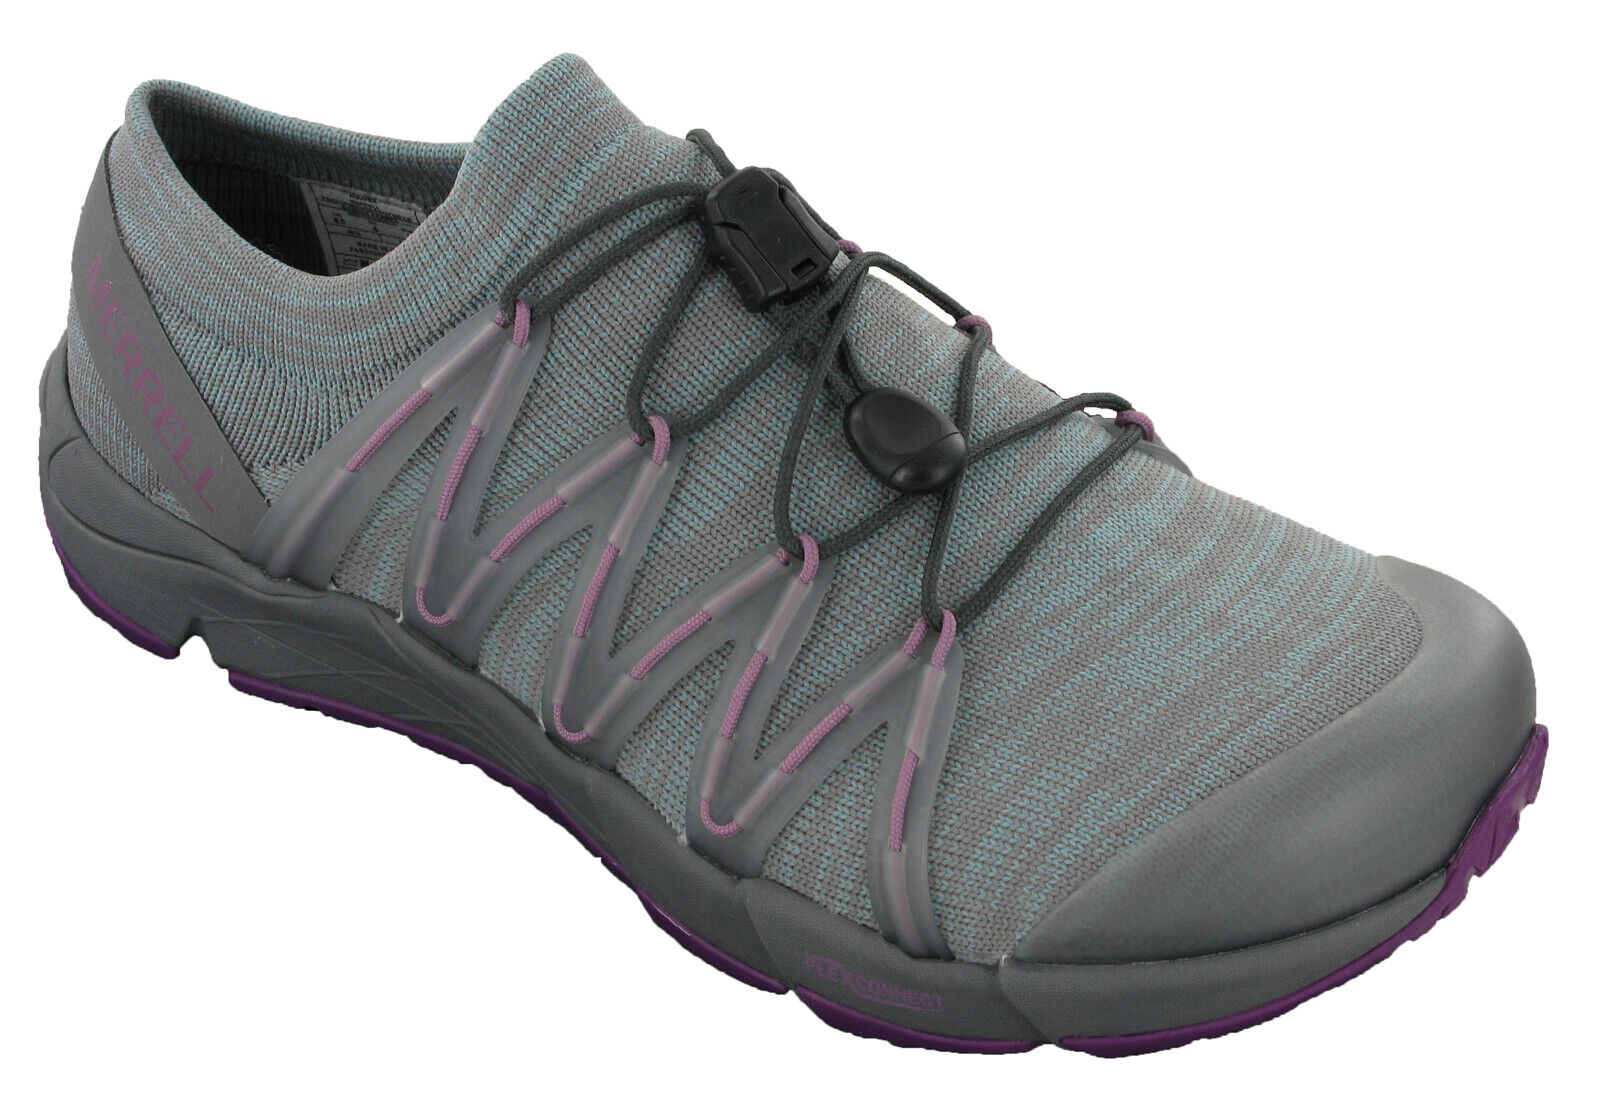 Sport Knit Bare Access Trainers Fitness Ladies Flex Womens Shoes Merrell Hiking rCBoEQdWxe